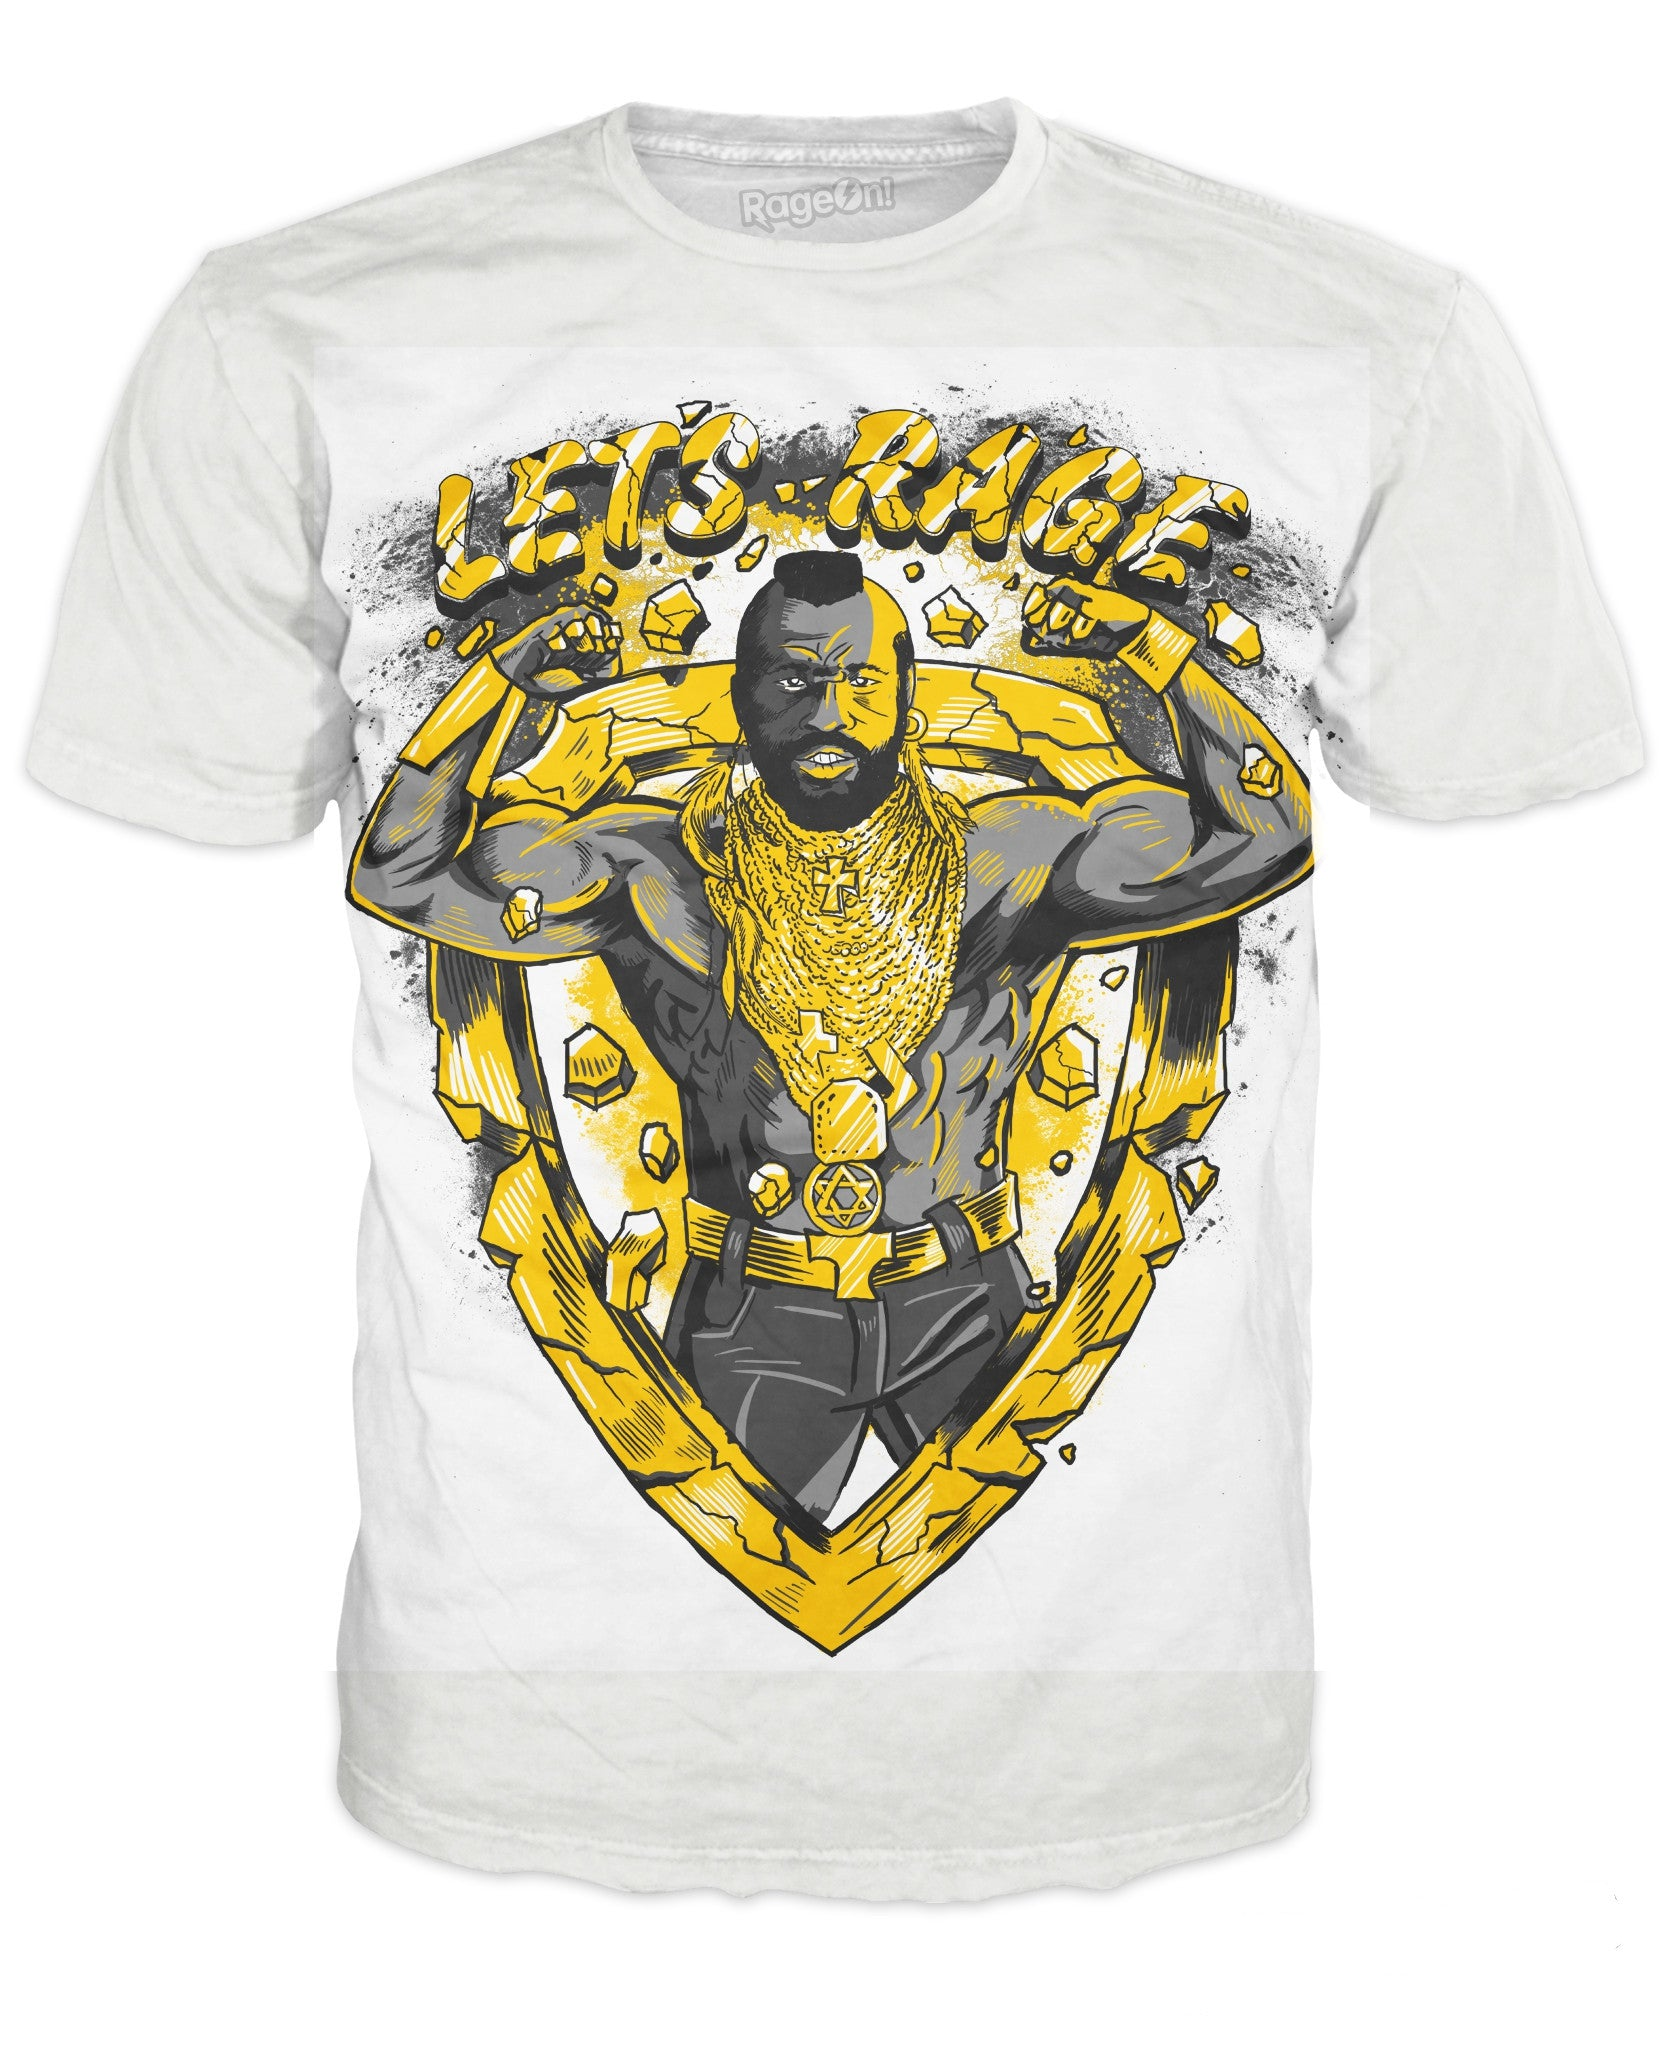 Let's Rage Mr. T!